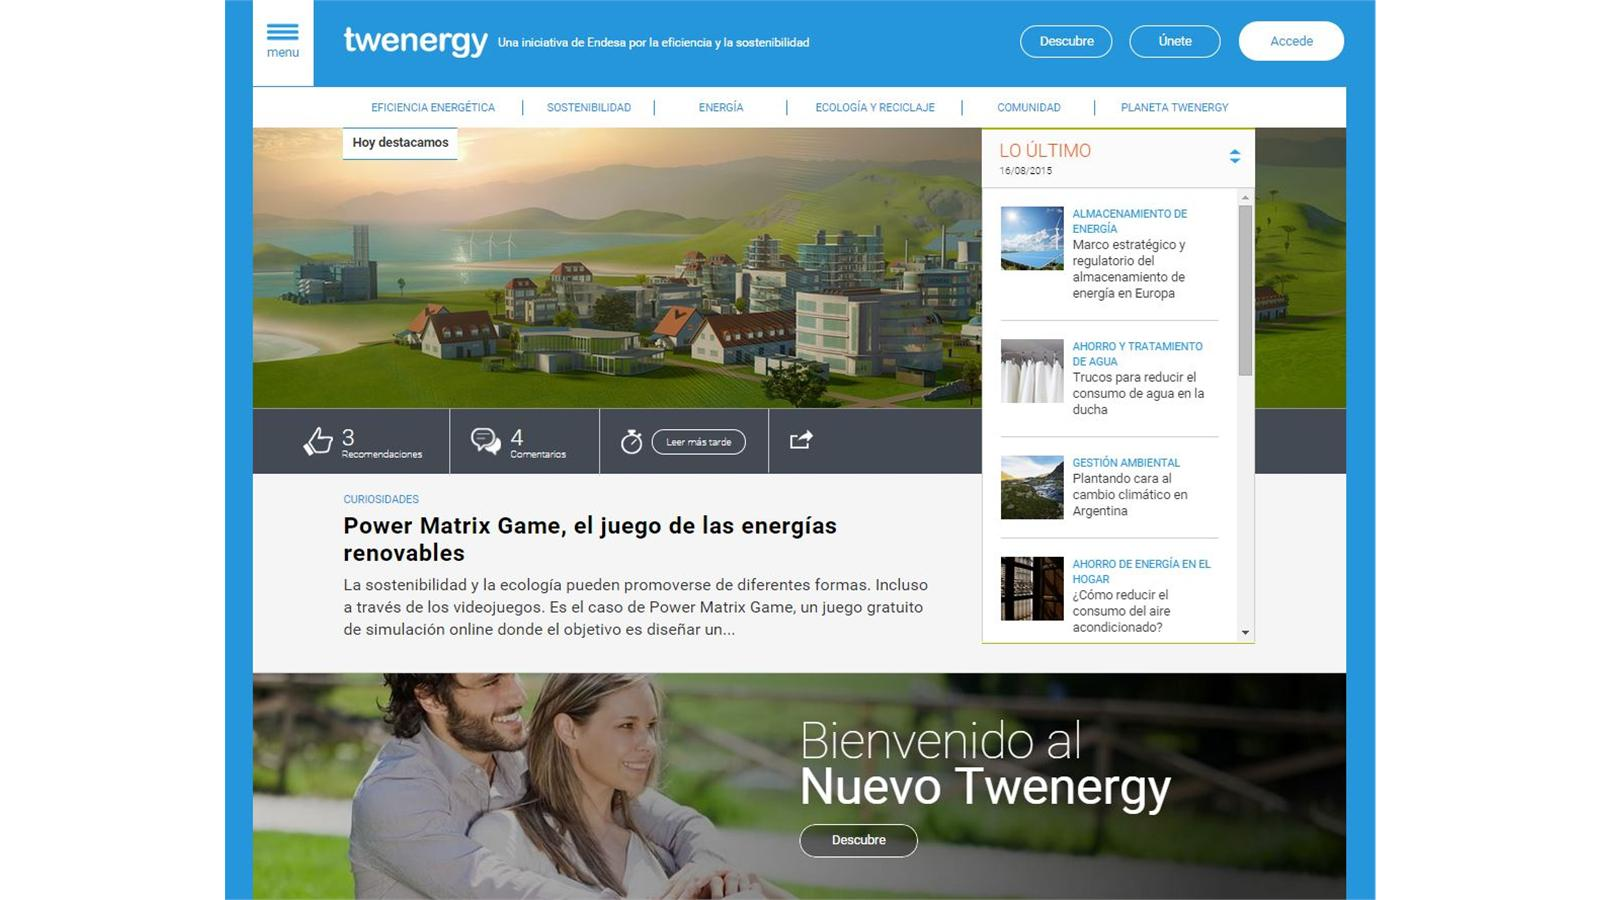 Twenergy.com, Endesa's website for promoting energy efficiency and responsible energy consumption, has now reached over 11.4 million visits